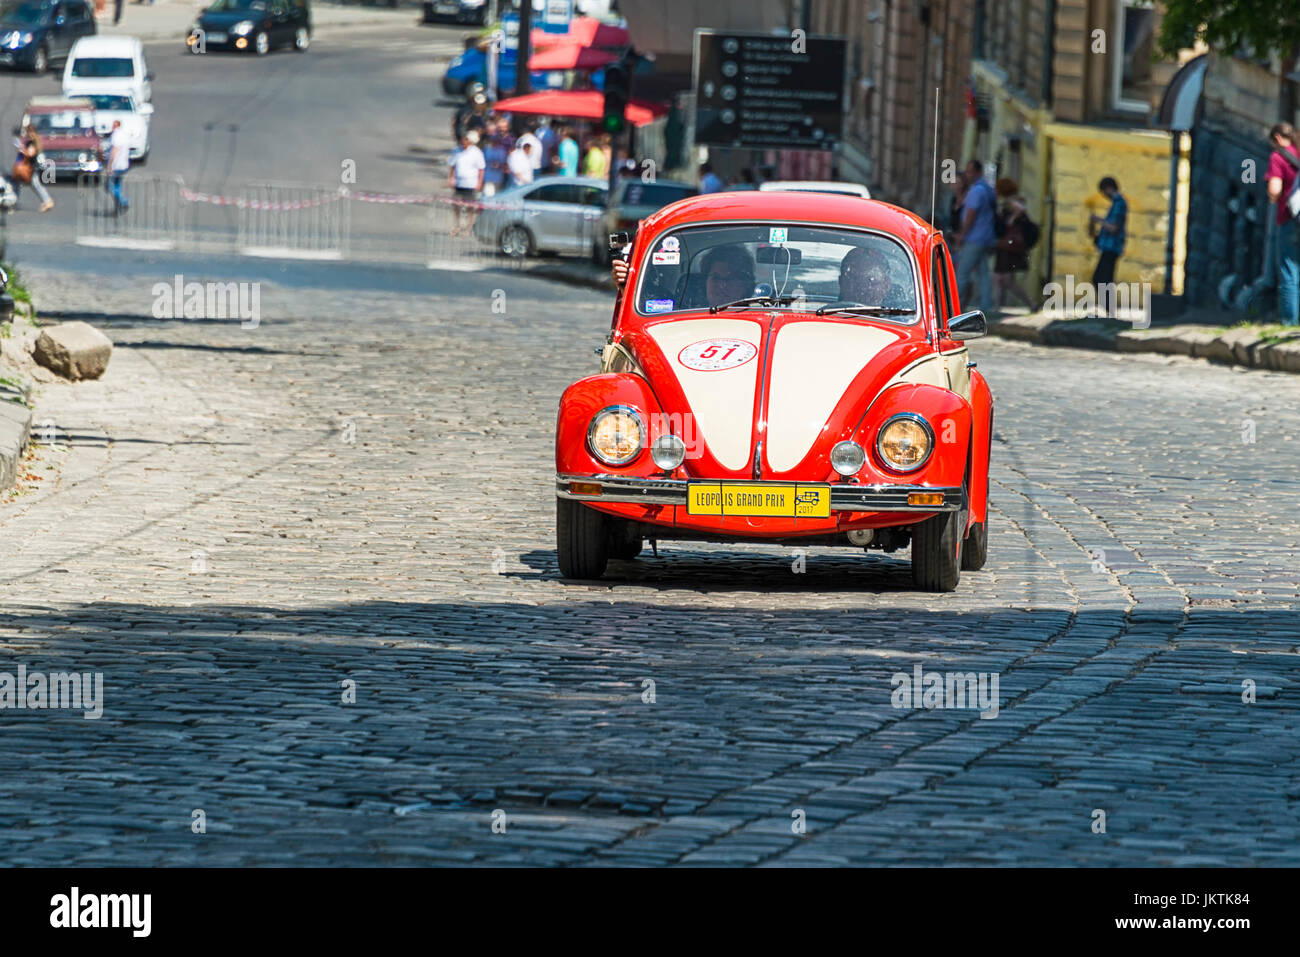 Lviv, Ukraine - June 4, 2017: Old retro car Volkswagen KAFER with its owner and au unknown passenger taking participation - Stock Image